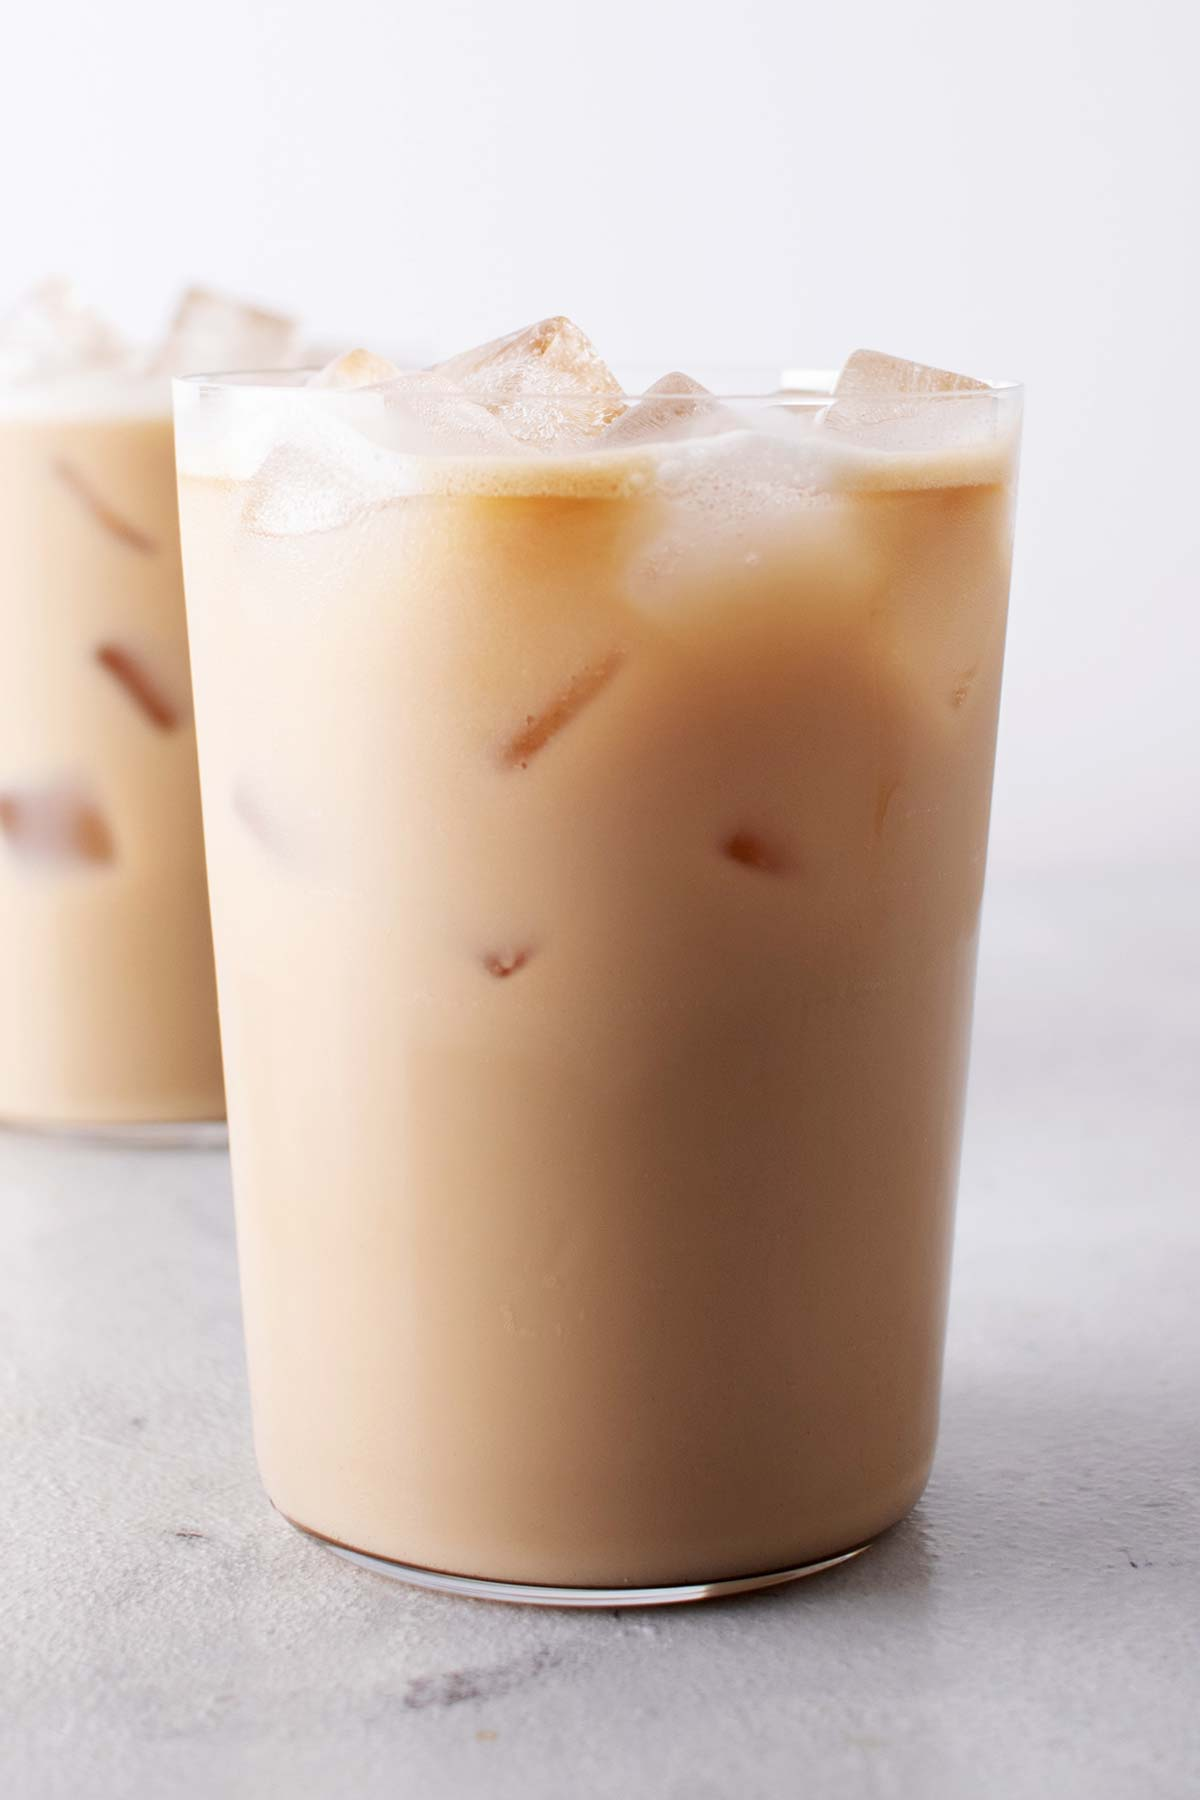 Two glasses filled with Iced Vanilla Latte.